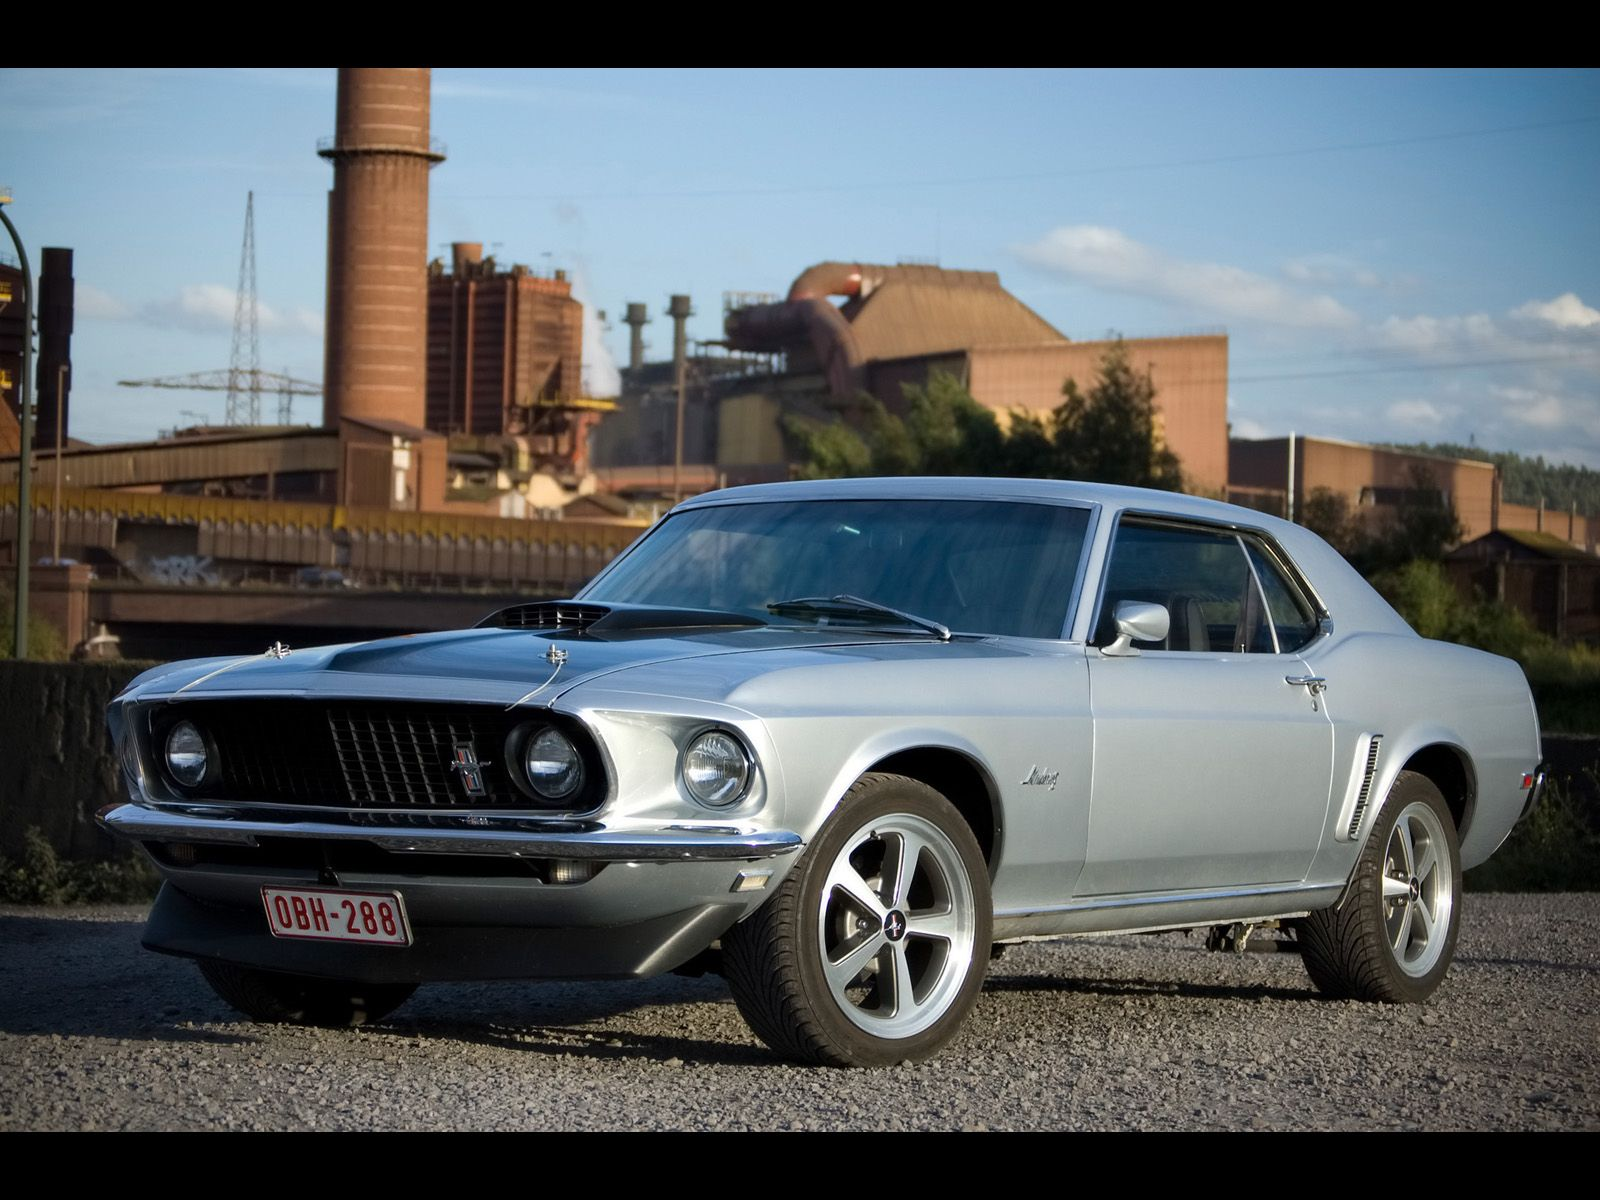 1969 Ford Mustang Hardtop with late model Mach 1 wheels